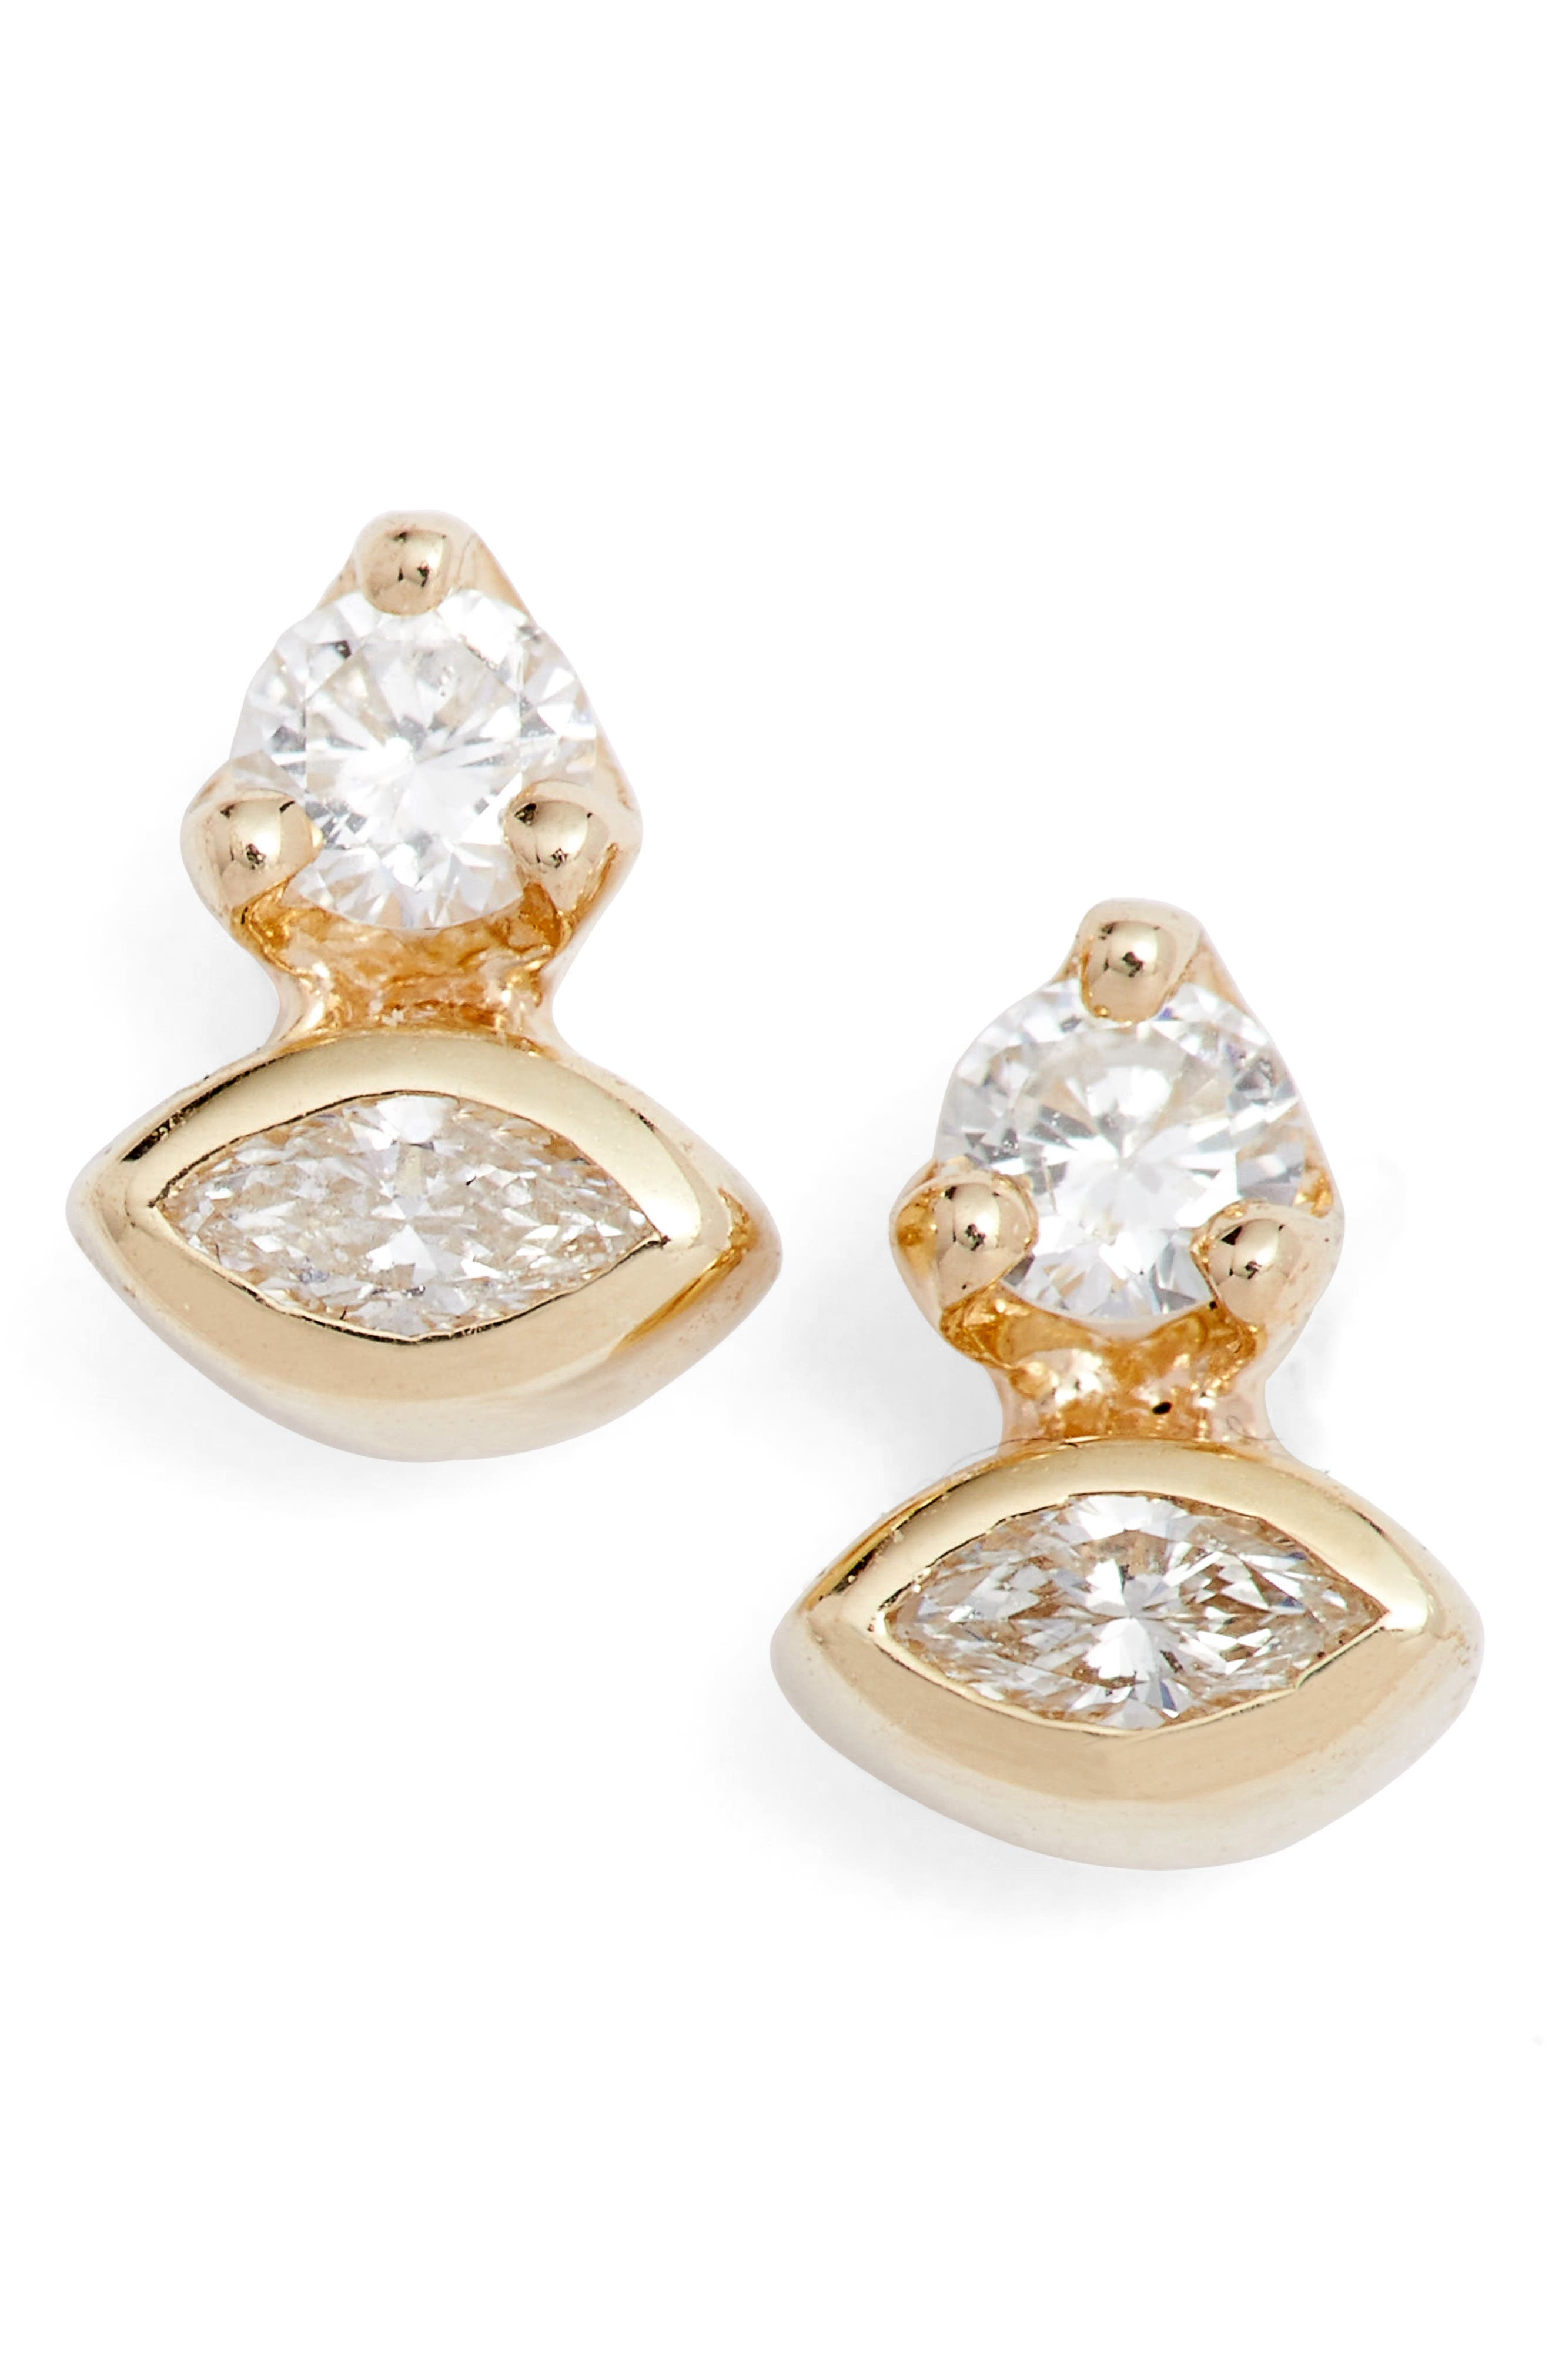 Main Image - Zoë Chicco Diamond Cluster Stud Earrings (Nordstrom Exclusive)